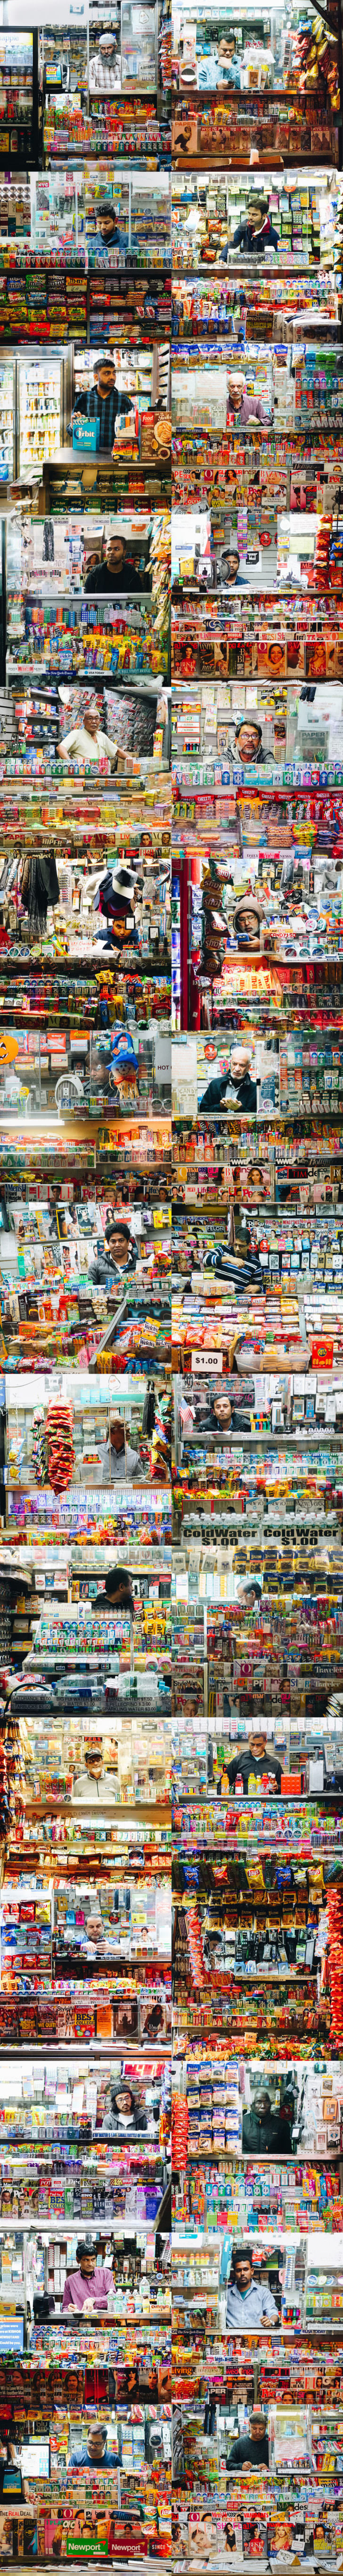 Nyc Newsstands Photography